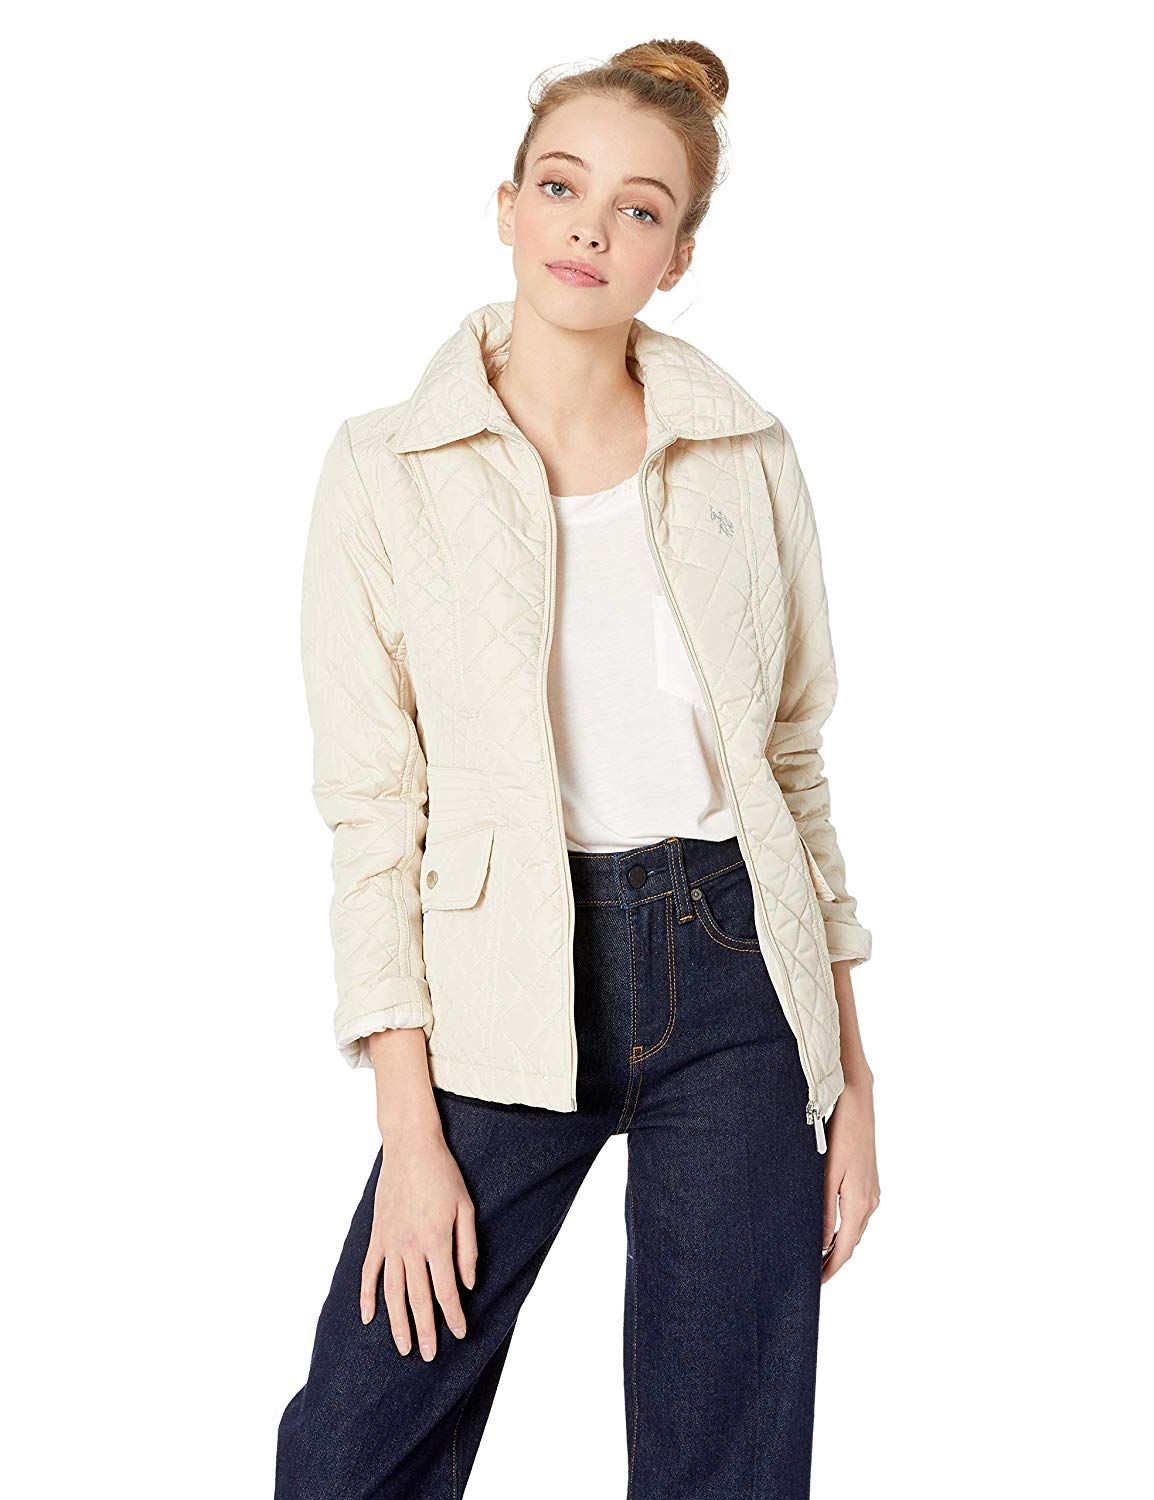 U S Polo Assn Women S Fashion Outerwear Jacket You Can Find Out More Details At The Link Of The Image This Is Outerwear Fashion Outerwear Jackets Fashion [ 1500 x 1154 Pixel ]